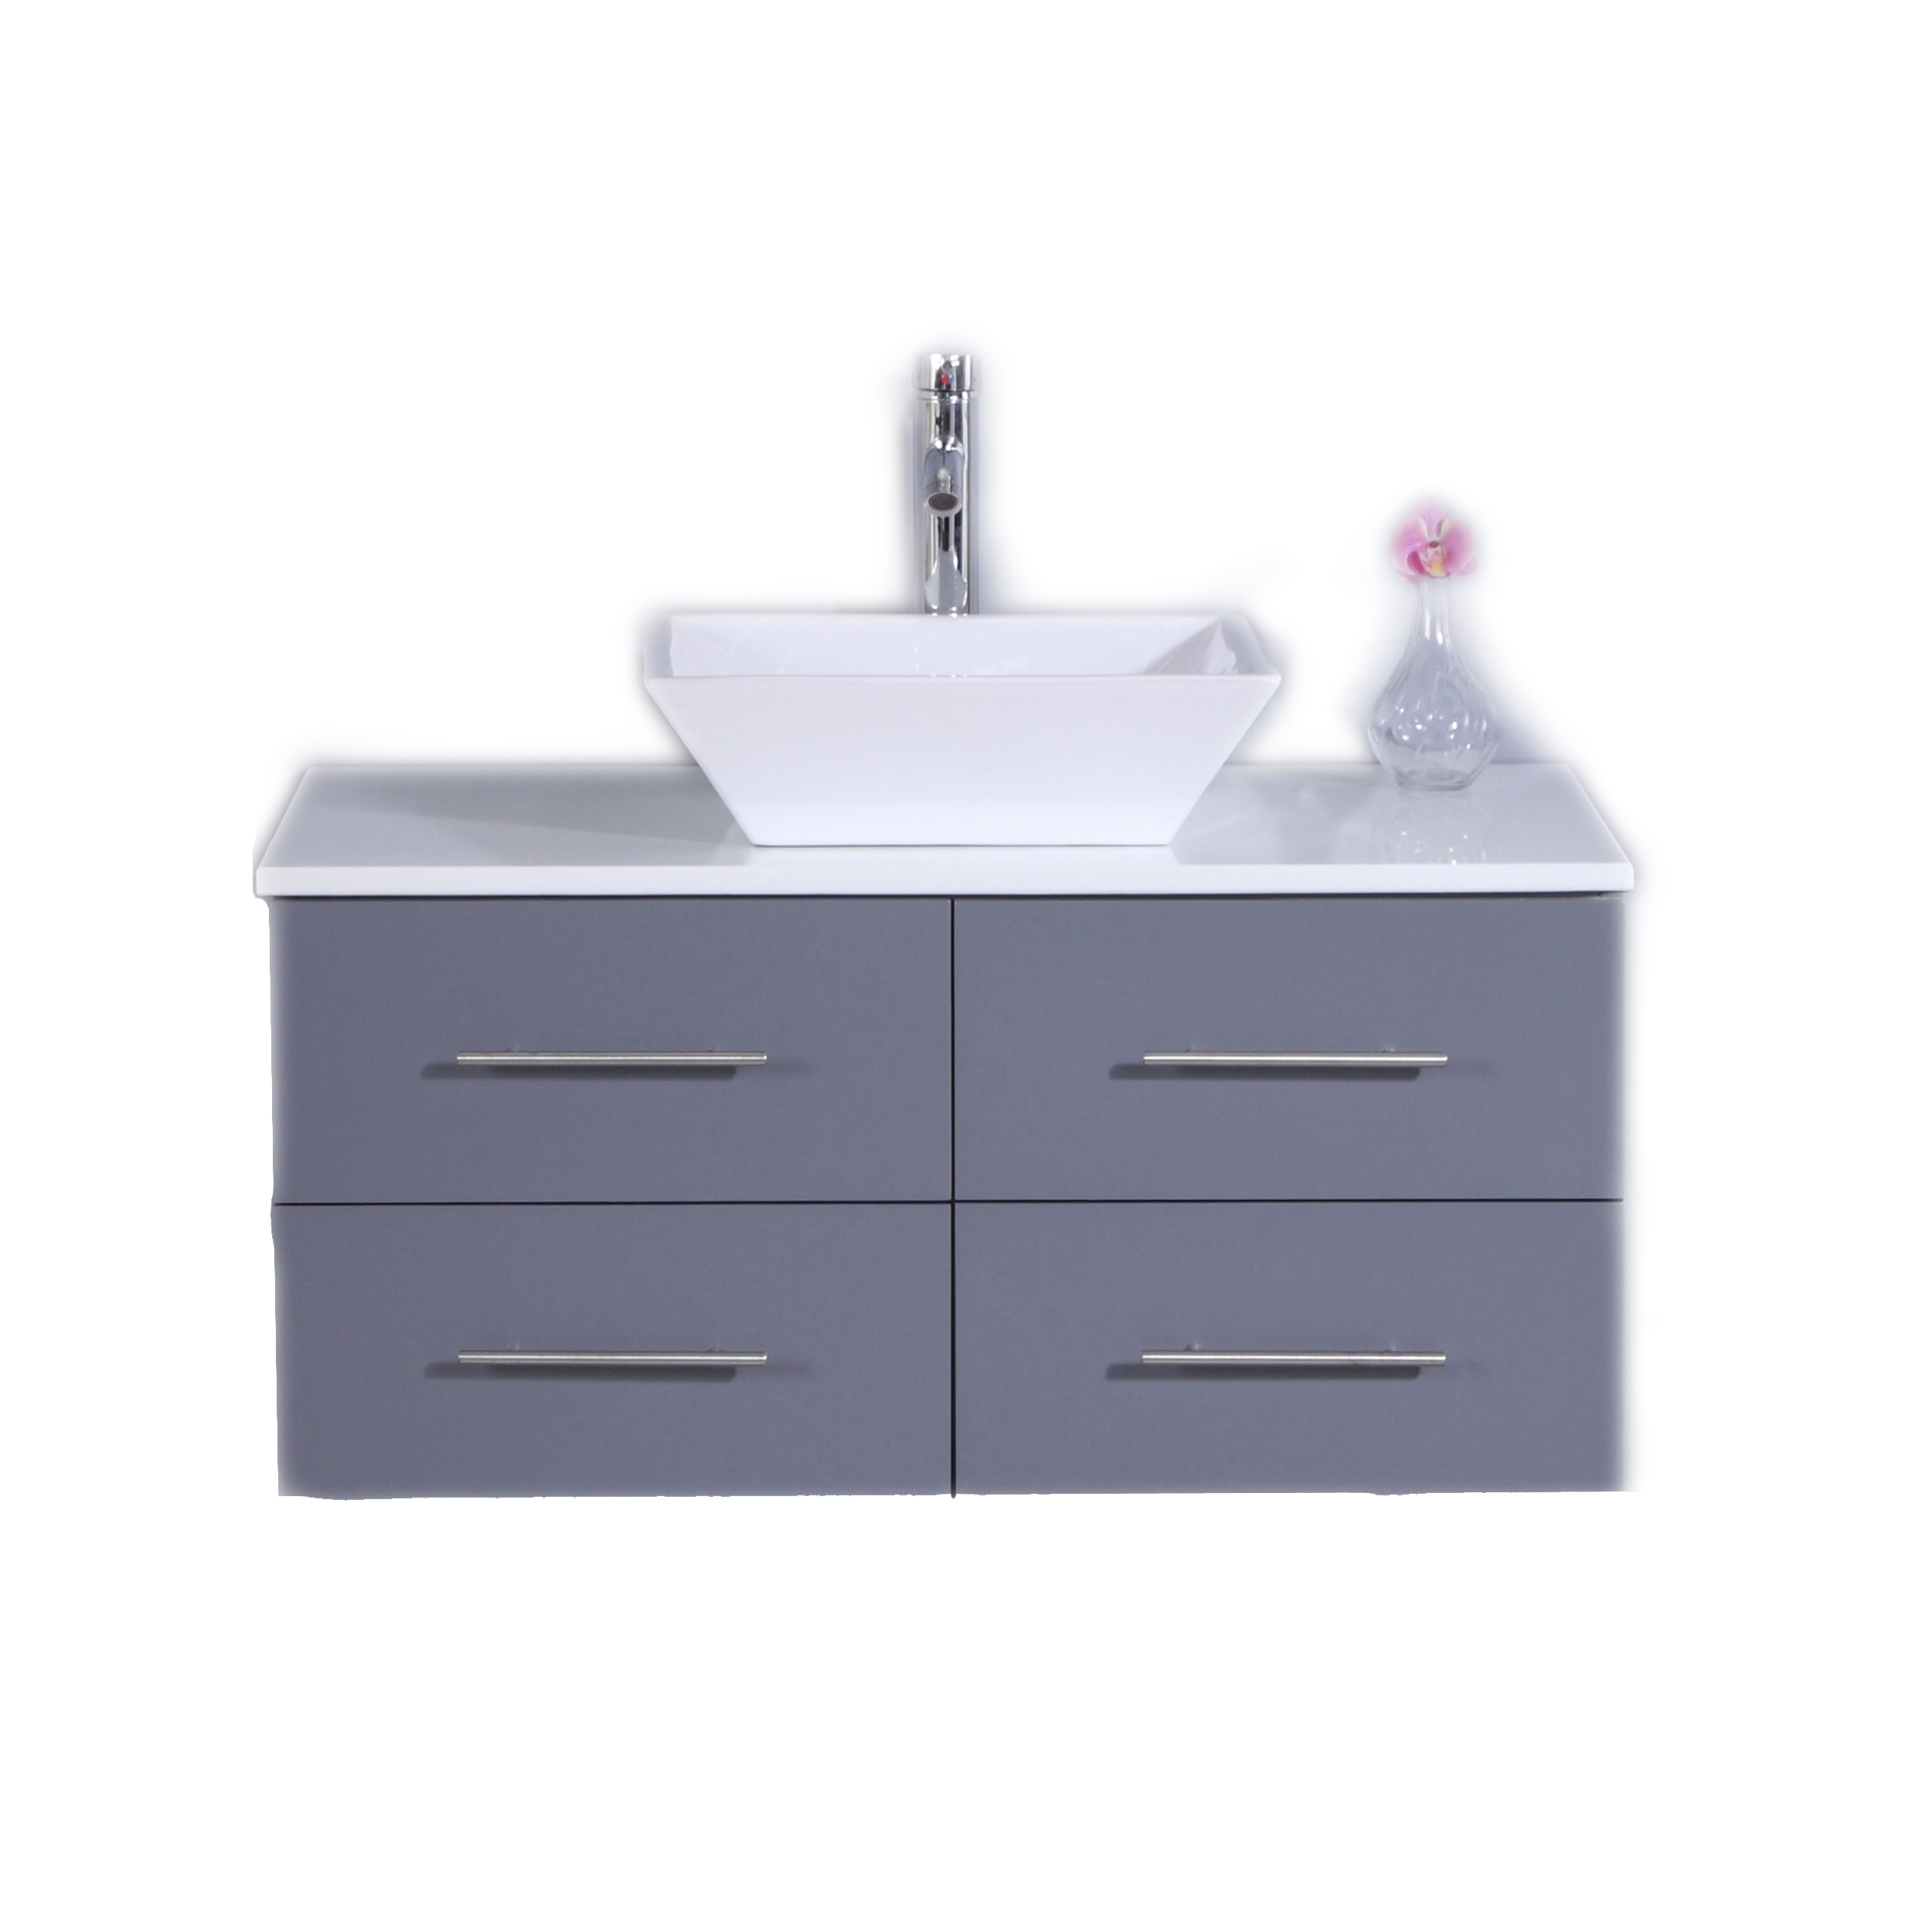 Totti Wave 36 Inch Gray Modern Bathroom Vanity With Counter Top And Sink Decors Us